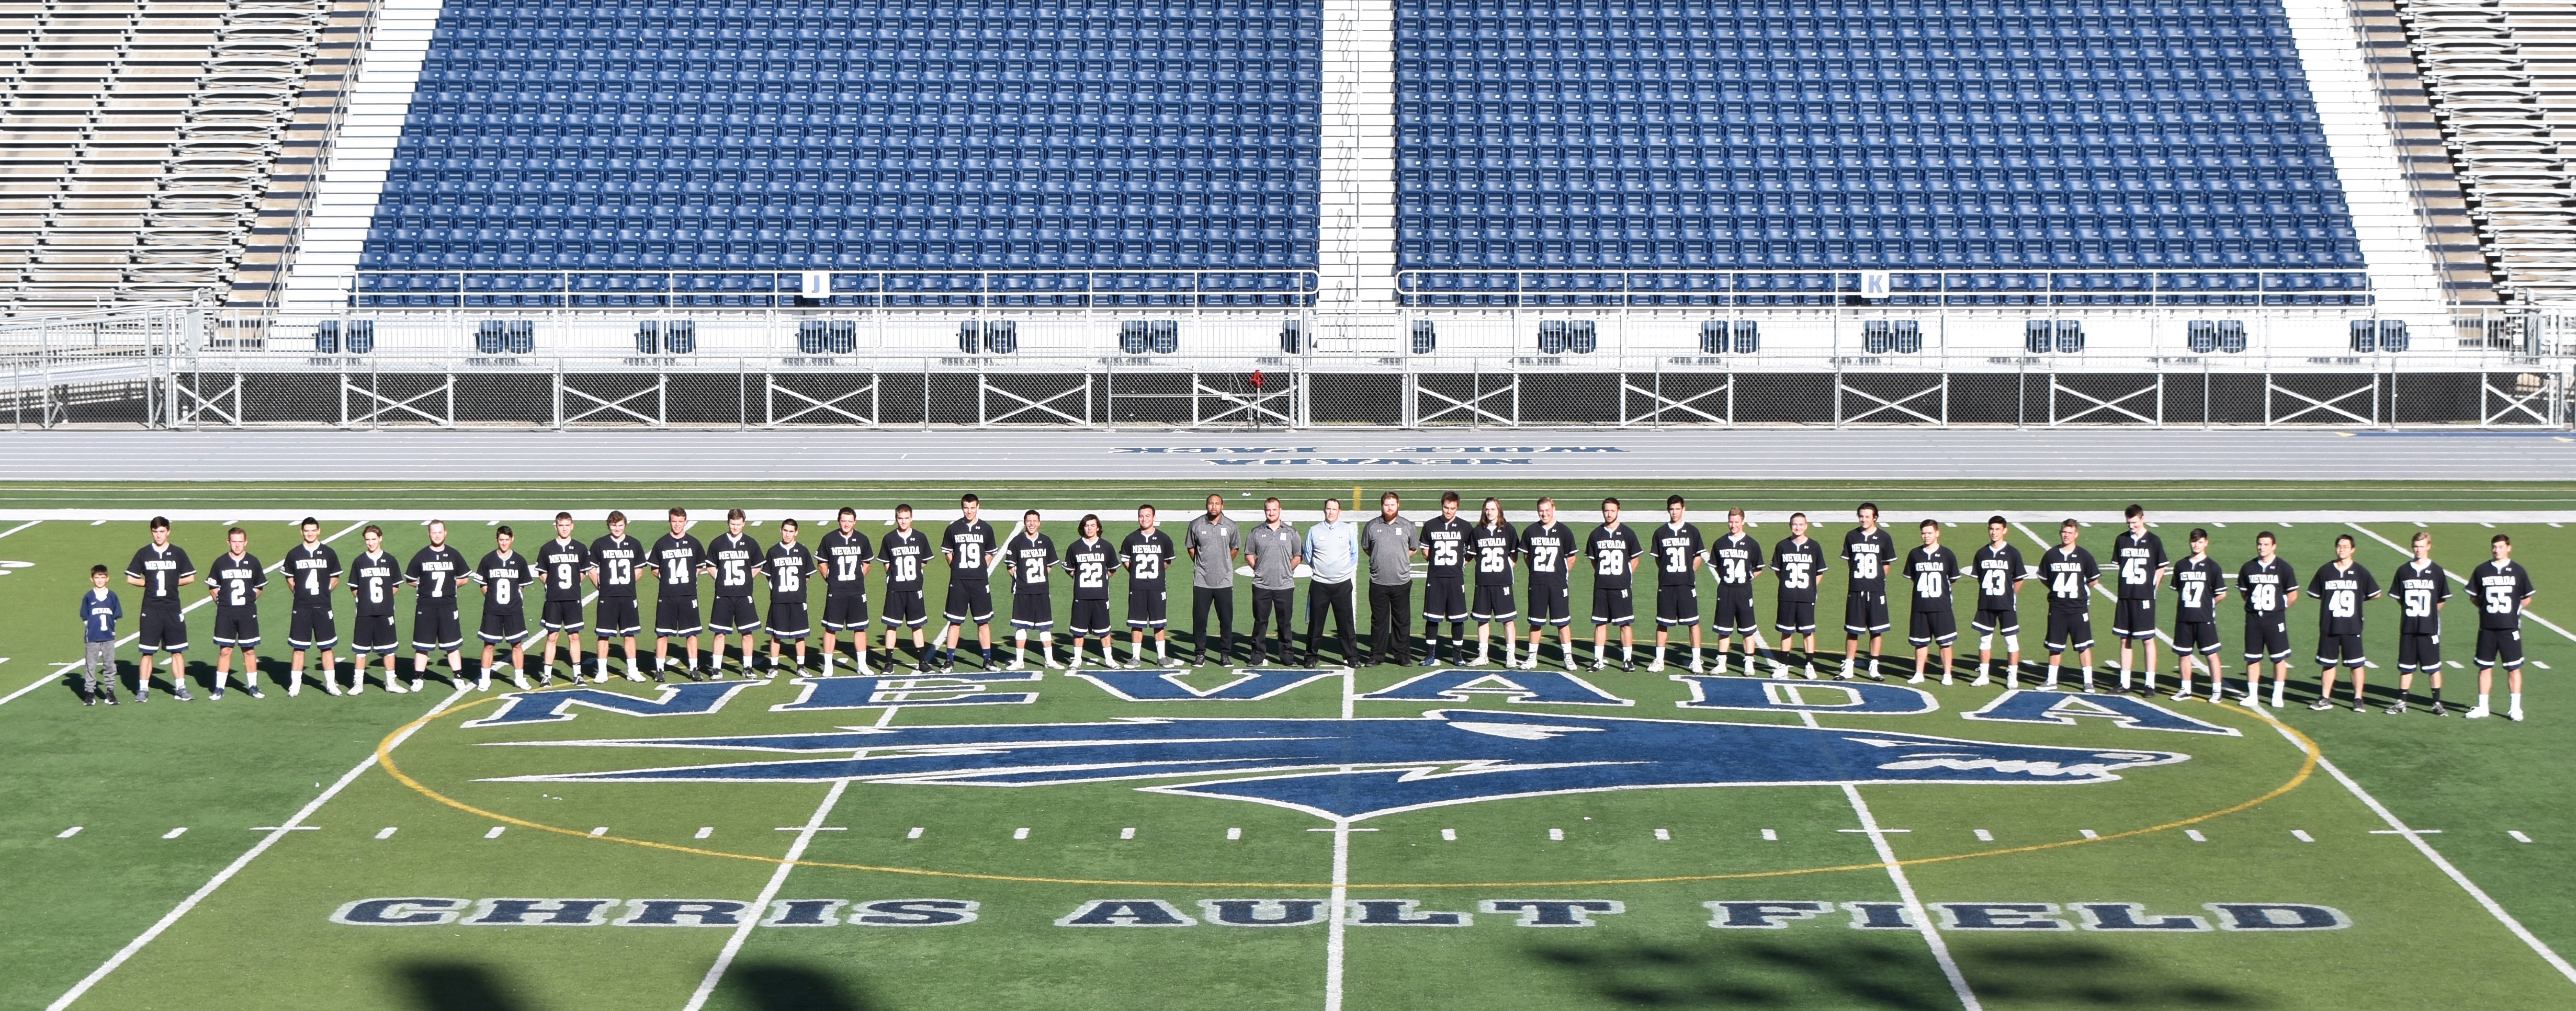 Nevada Wolf Pack Roster Mcla